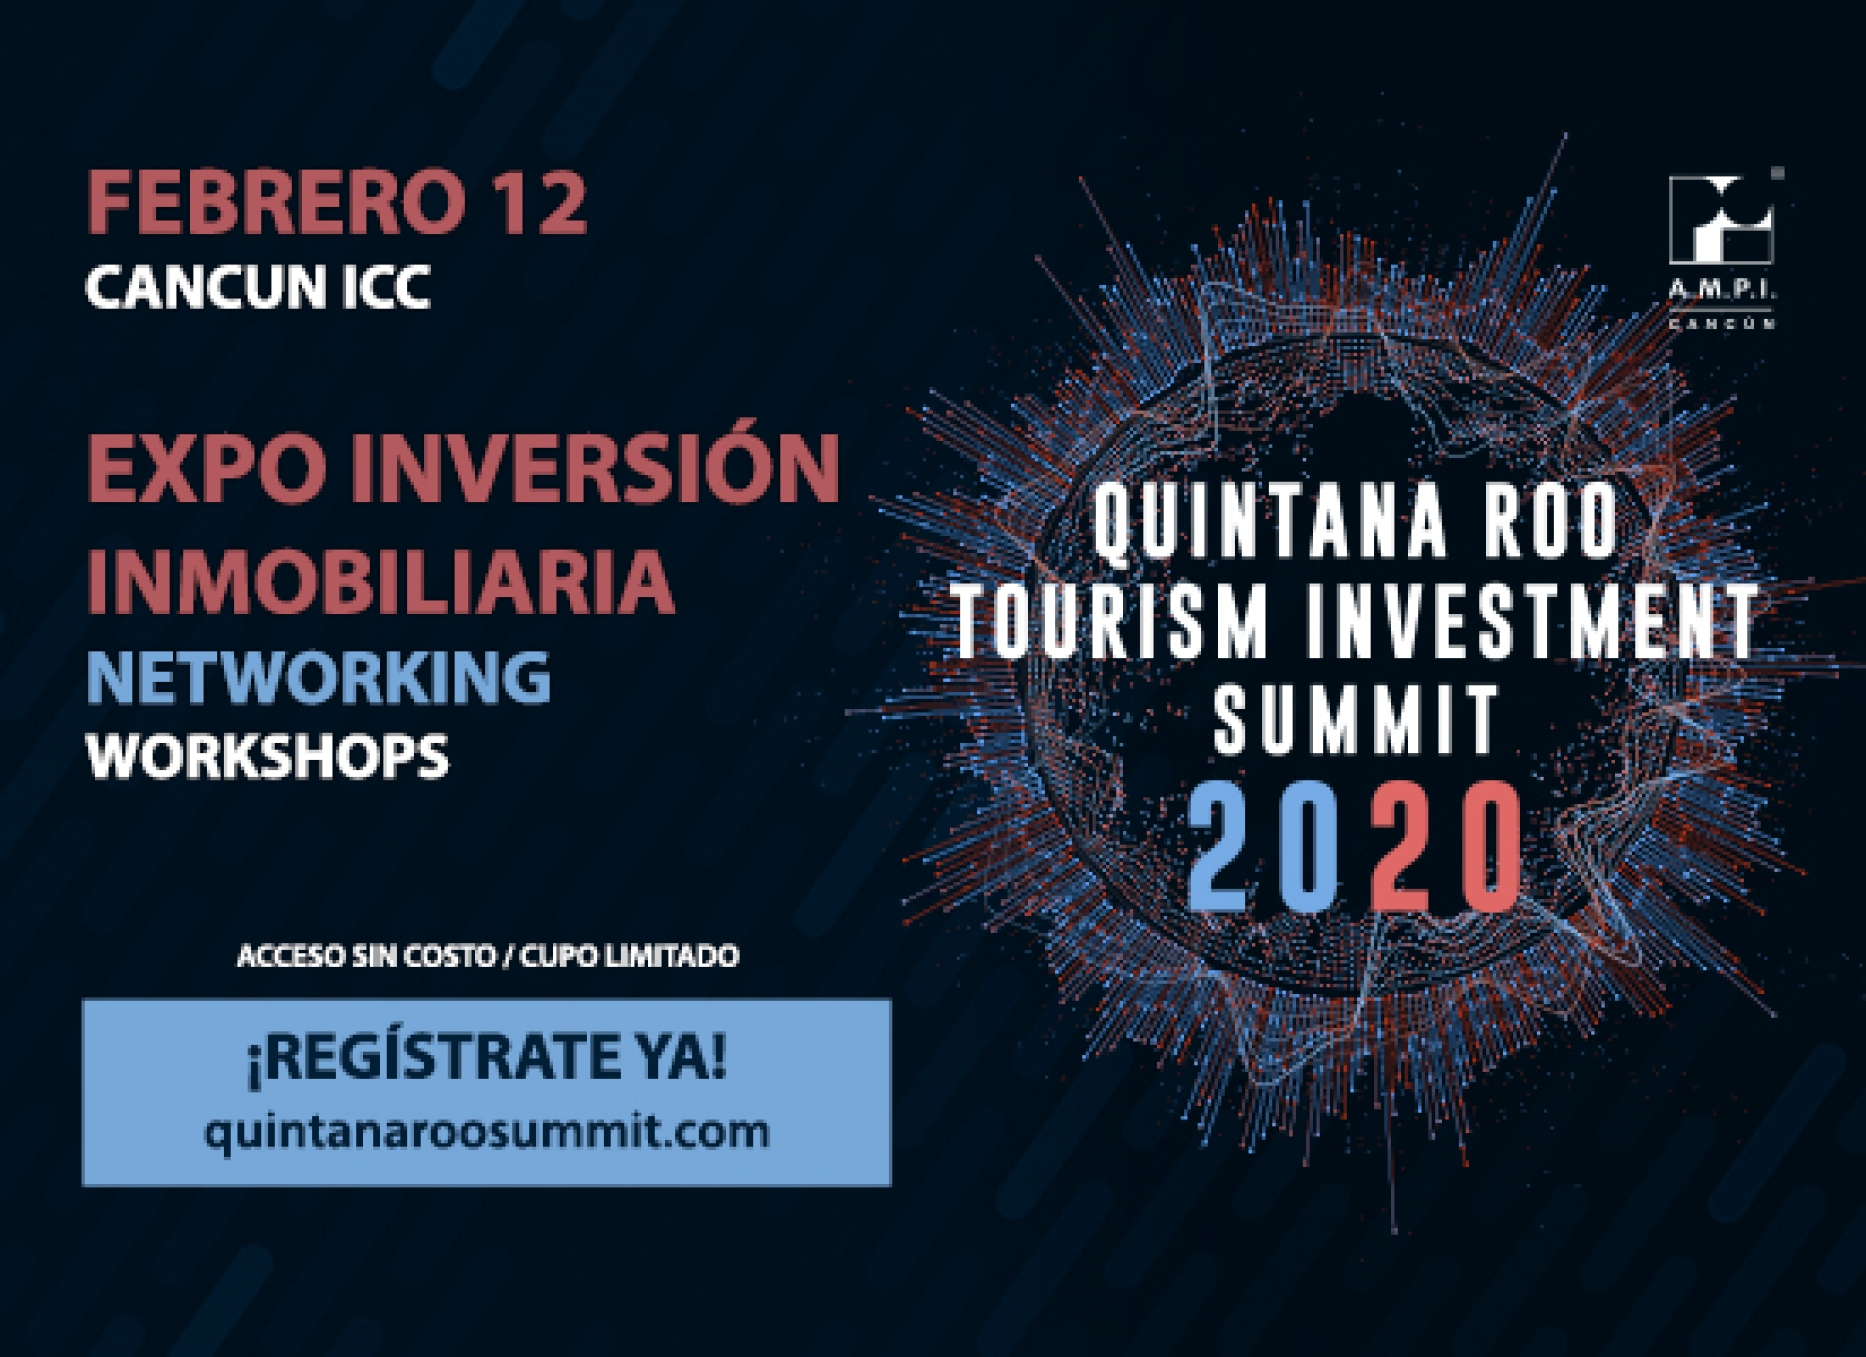 QUINTANA ROO TOURISM INVESTMENT SUMMIT 2020